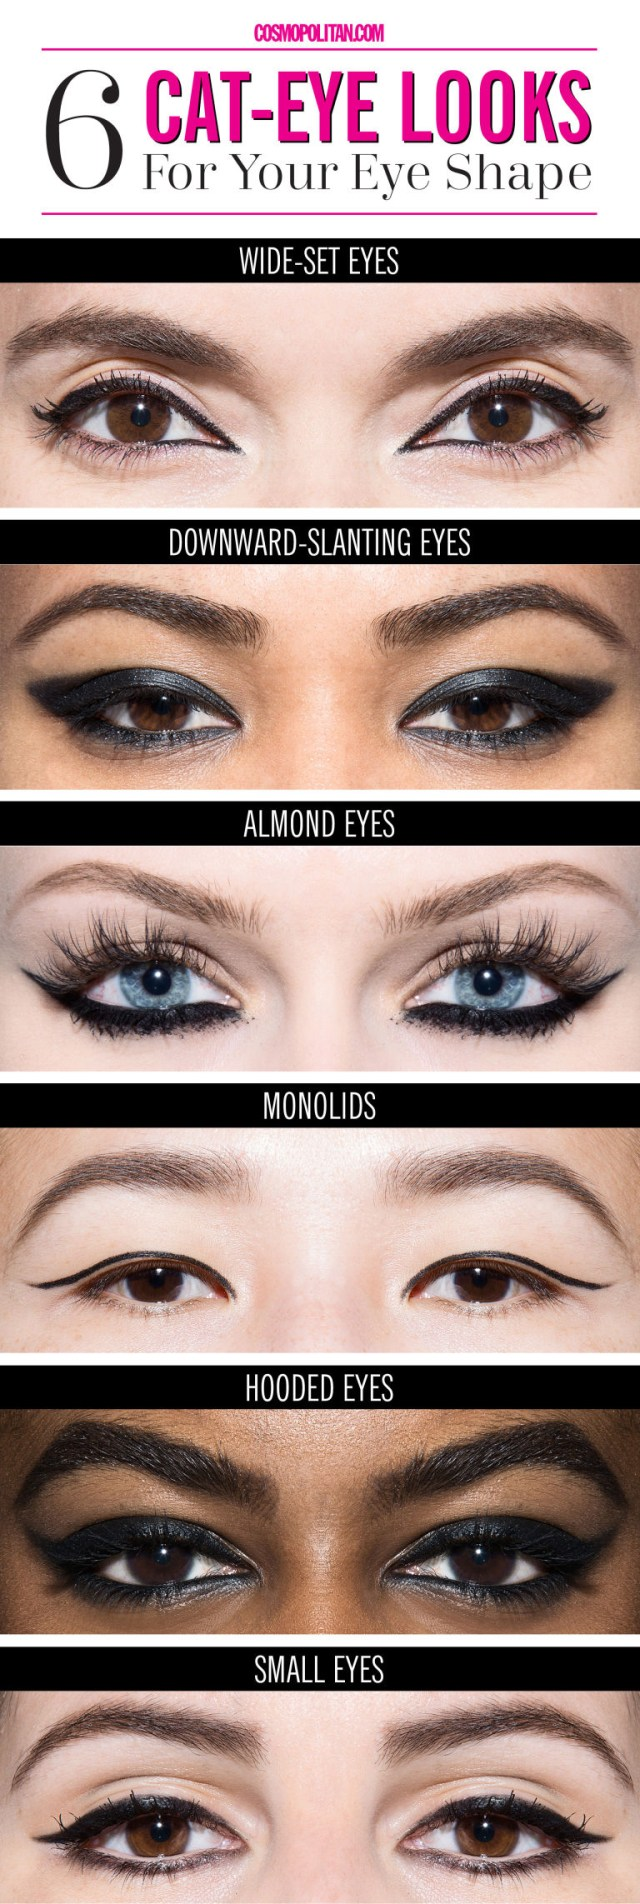 Eye Shapes For Makeup 6 Ways To Get The Perfect Cat Eye For Your Eye Shape Trend To Wear